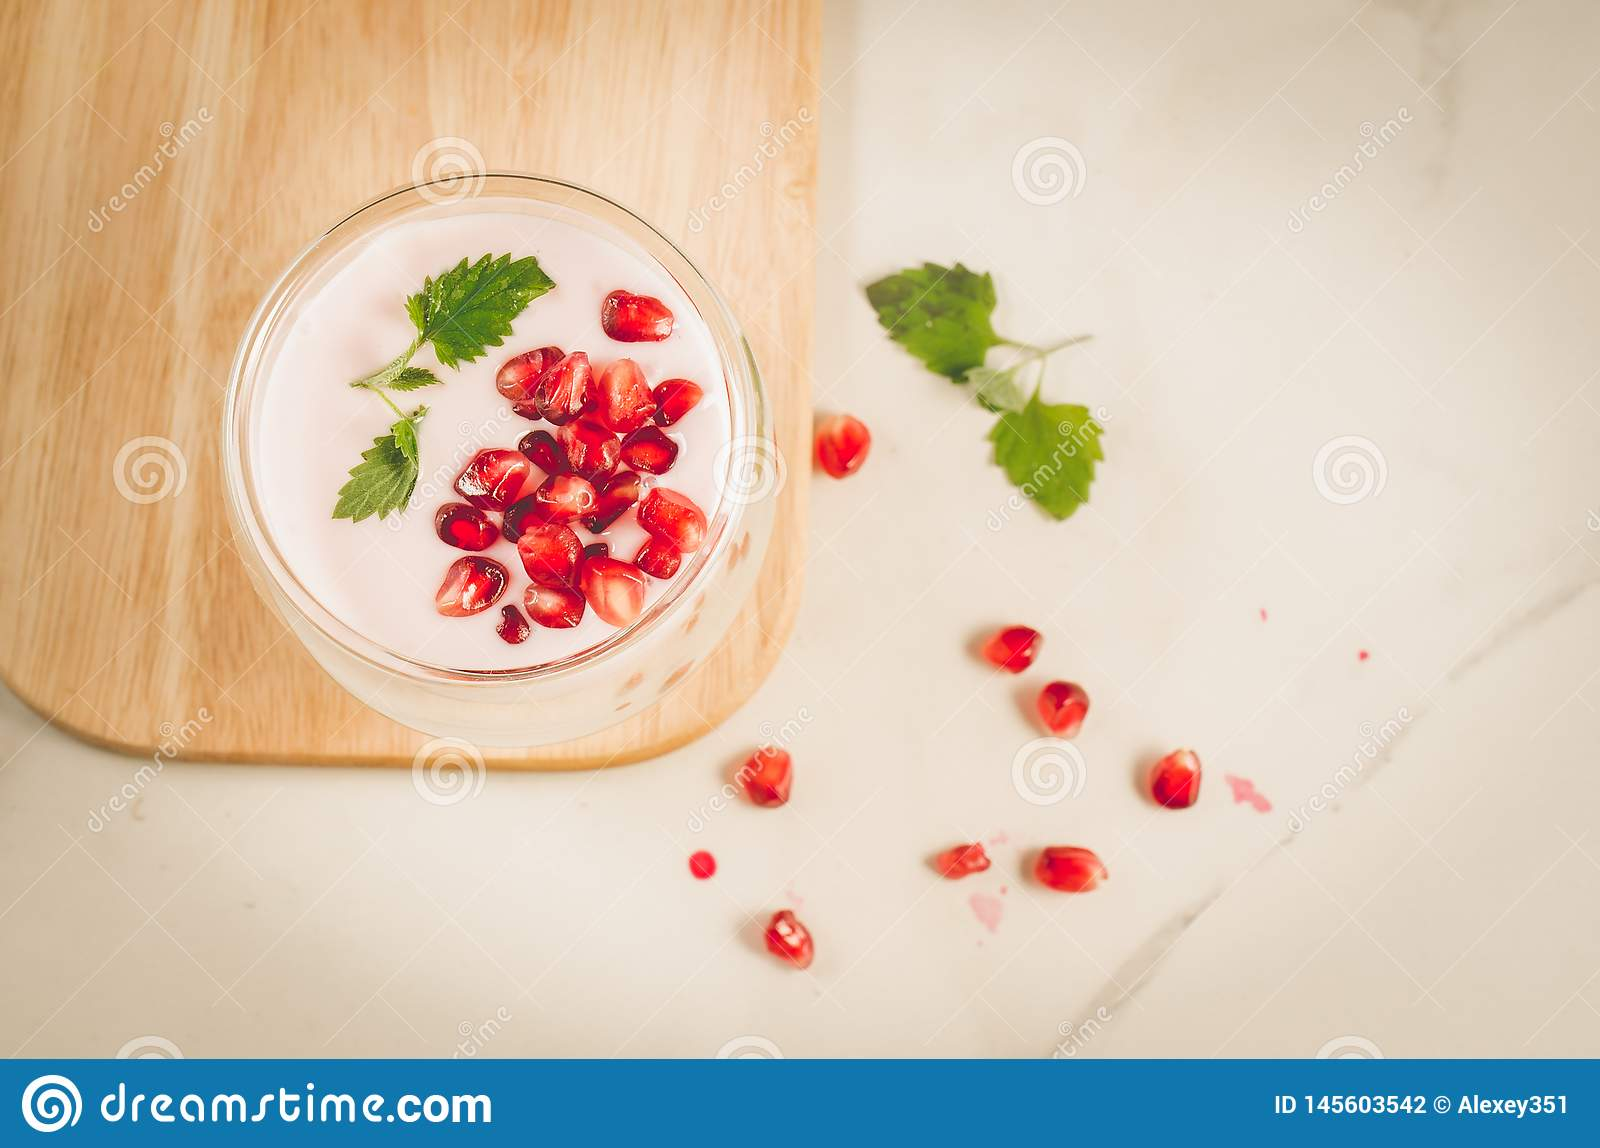 Yogurt. Yogurt with garnet and mint in glass on a wooden tray and the scattered pomegranate seeds on a white table. Top view.